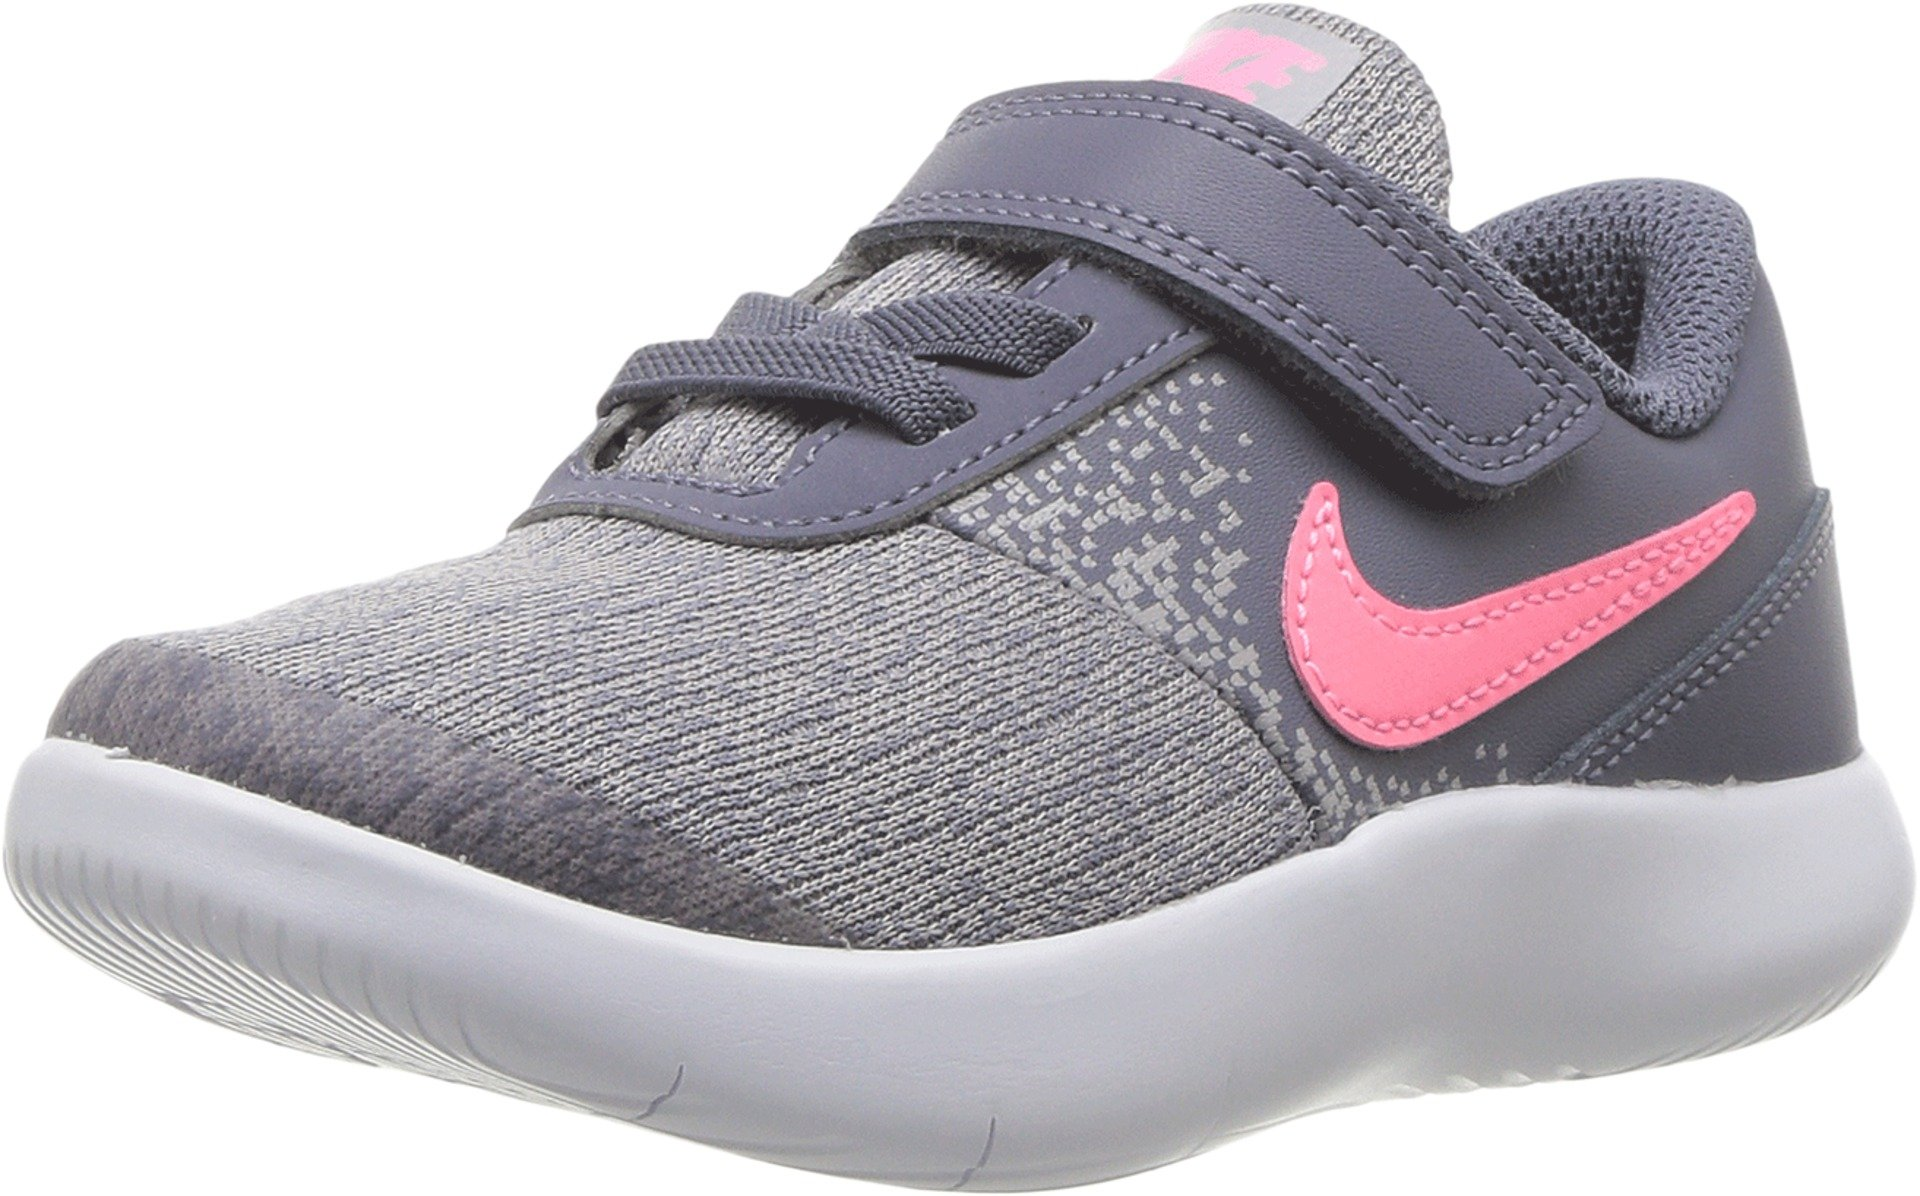 Nike Toddler Flex Contact (TDV) Light Carbon Sunset Pulse Size 8 by Nike